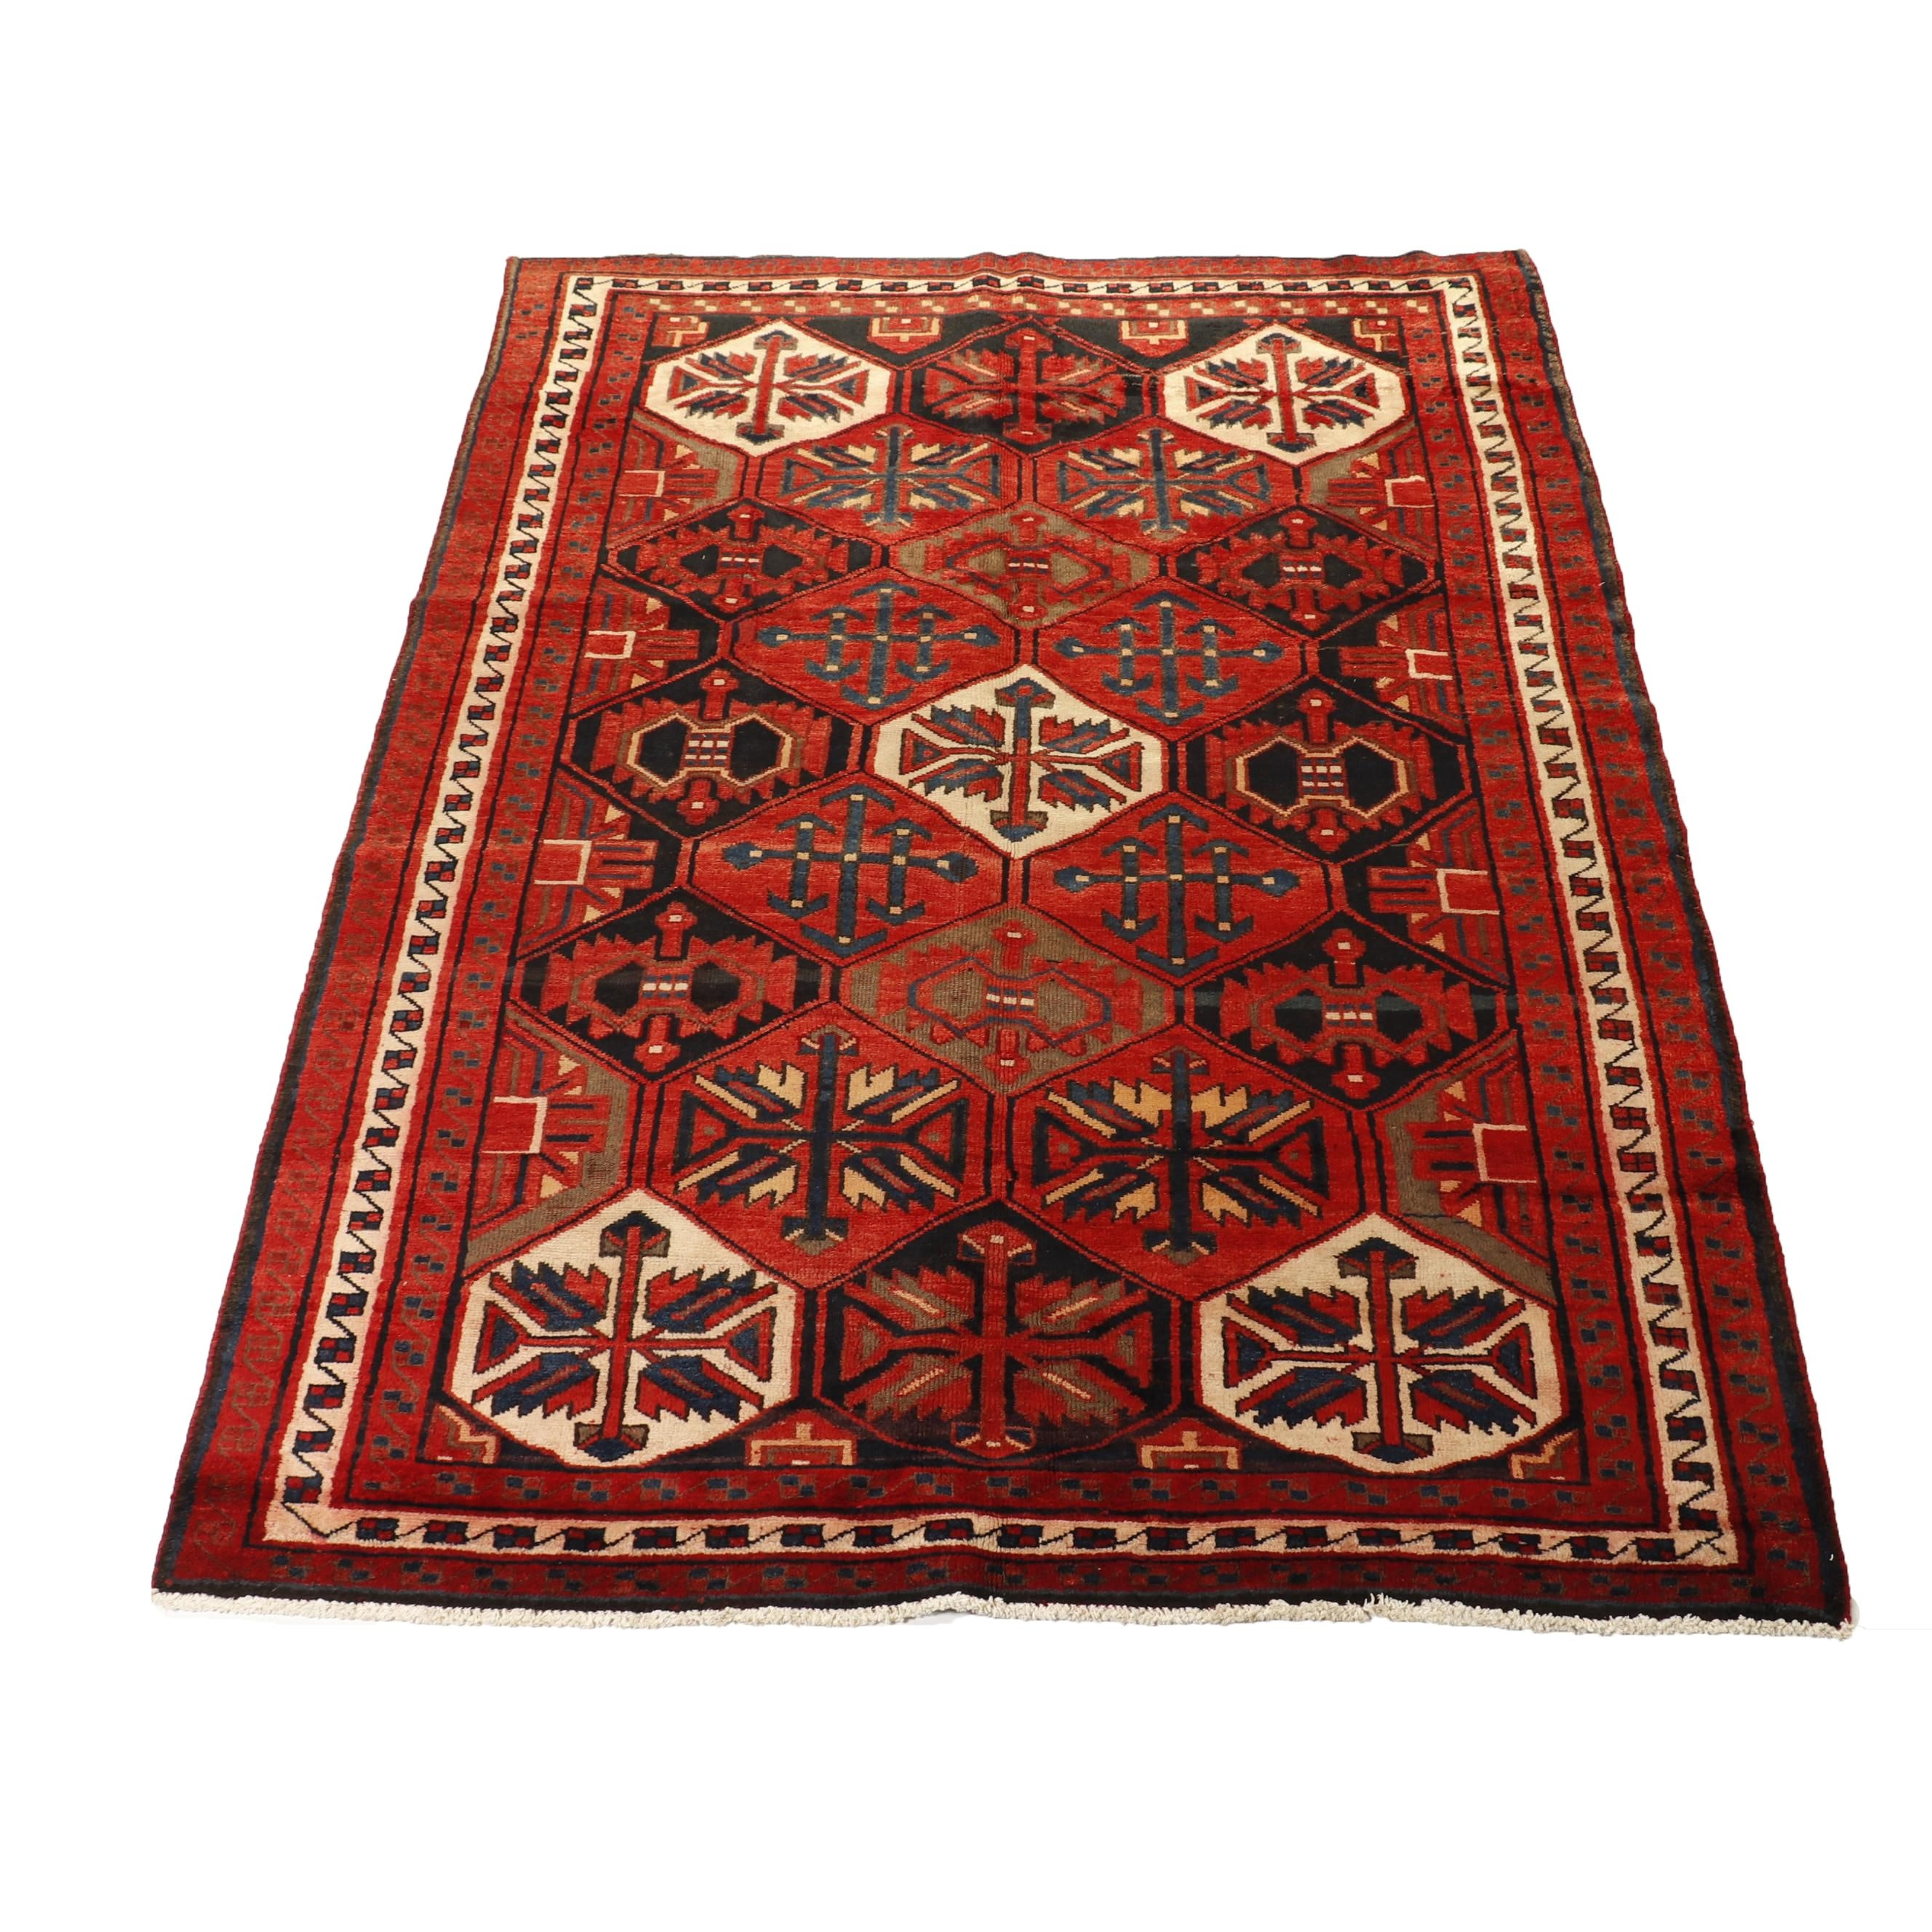 Hand-Knotted Persian Kurdish Wool Rug